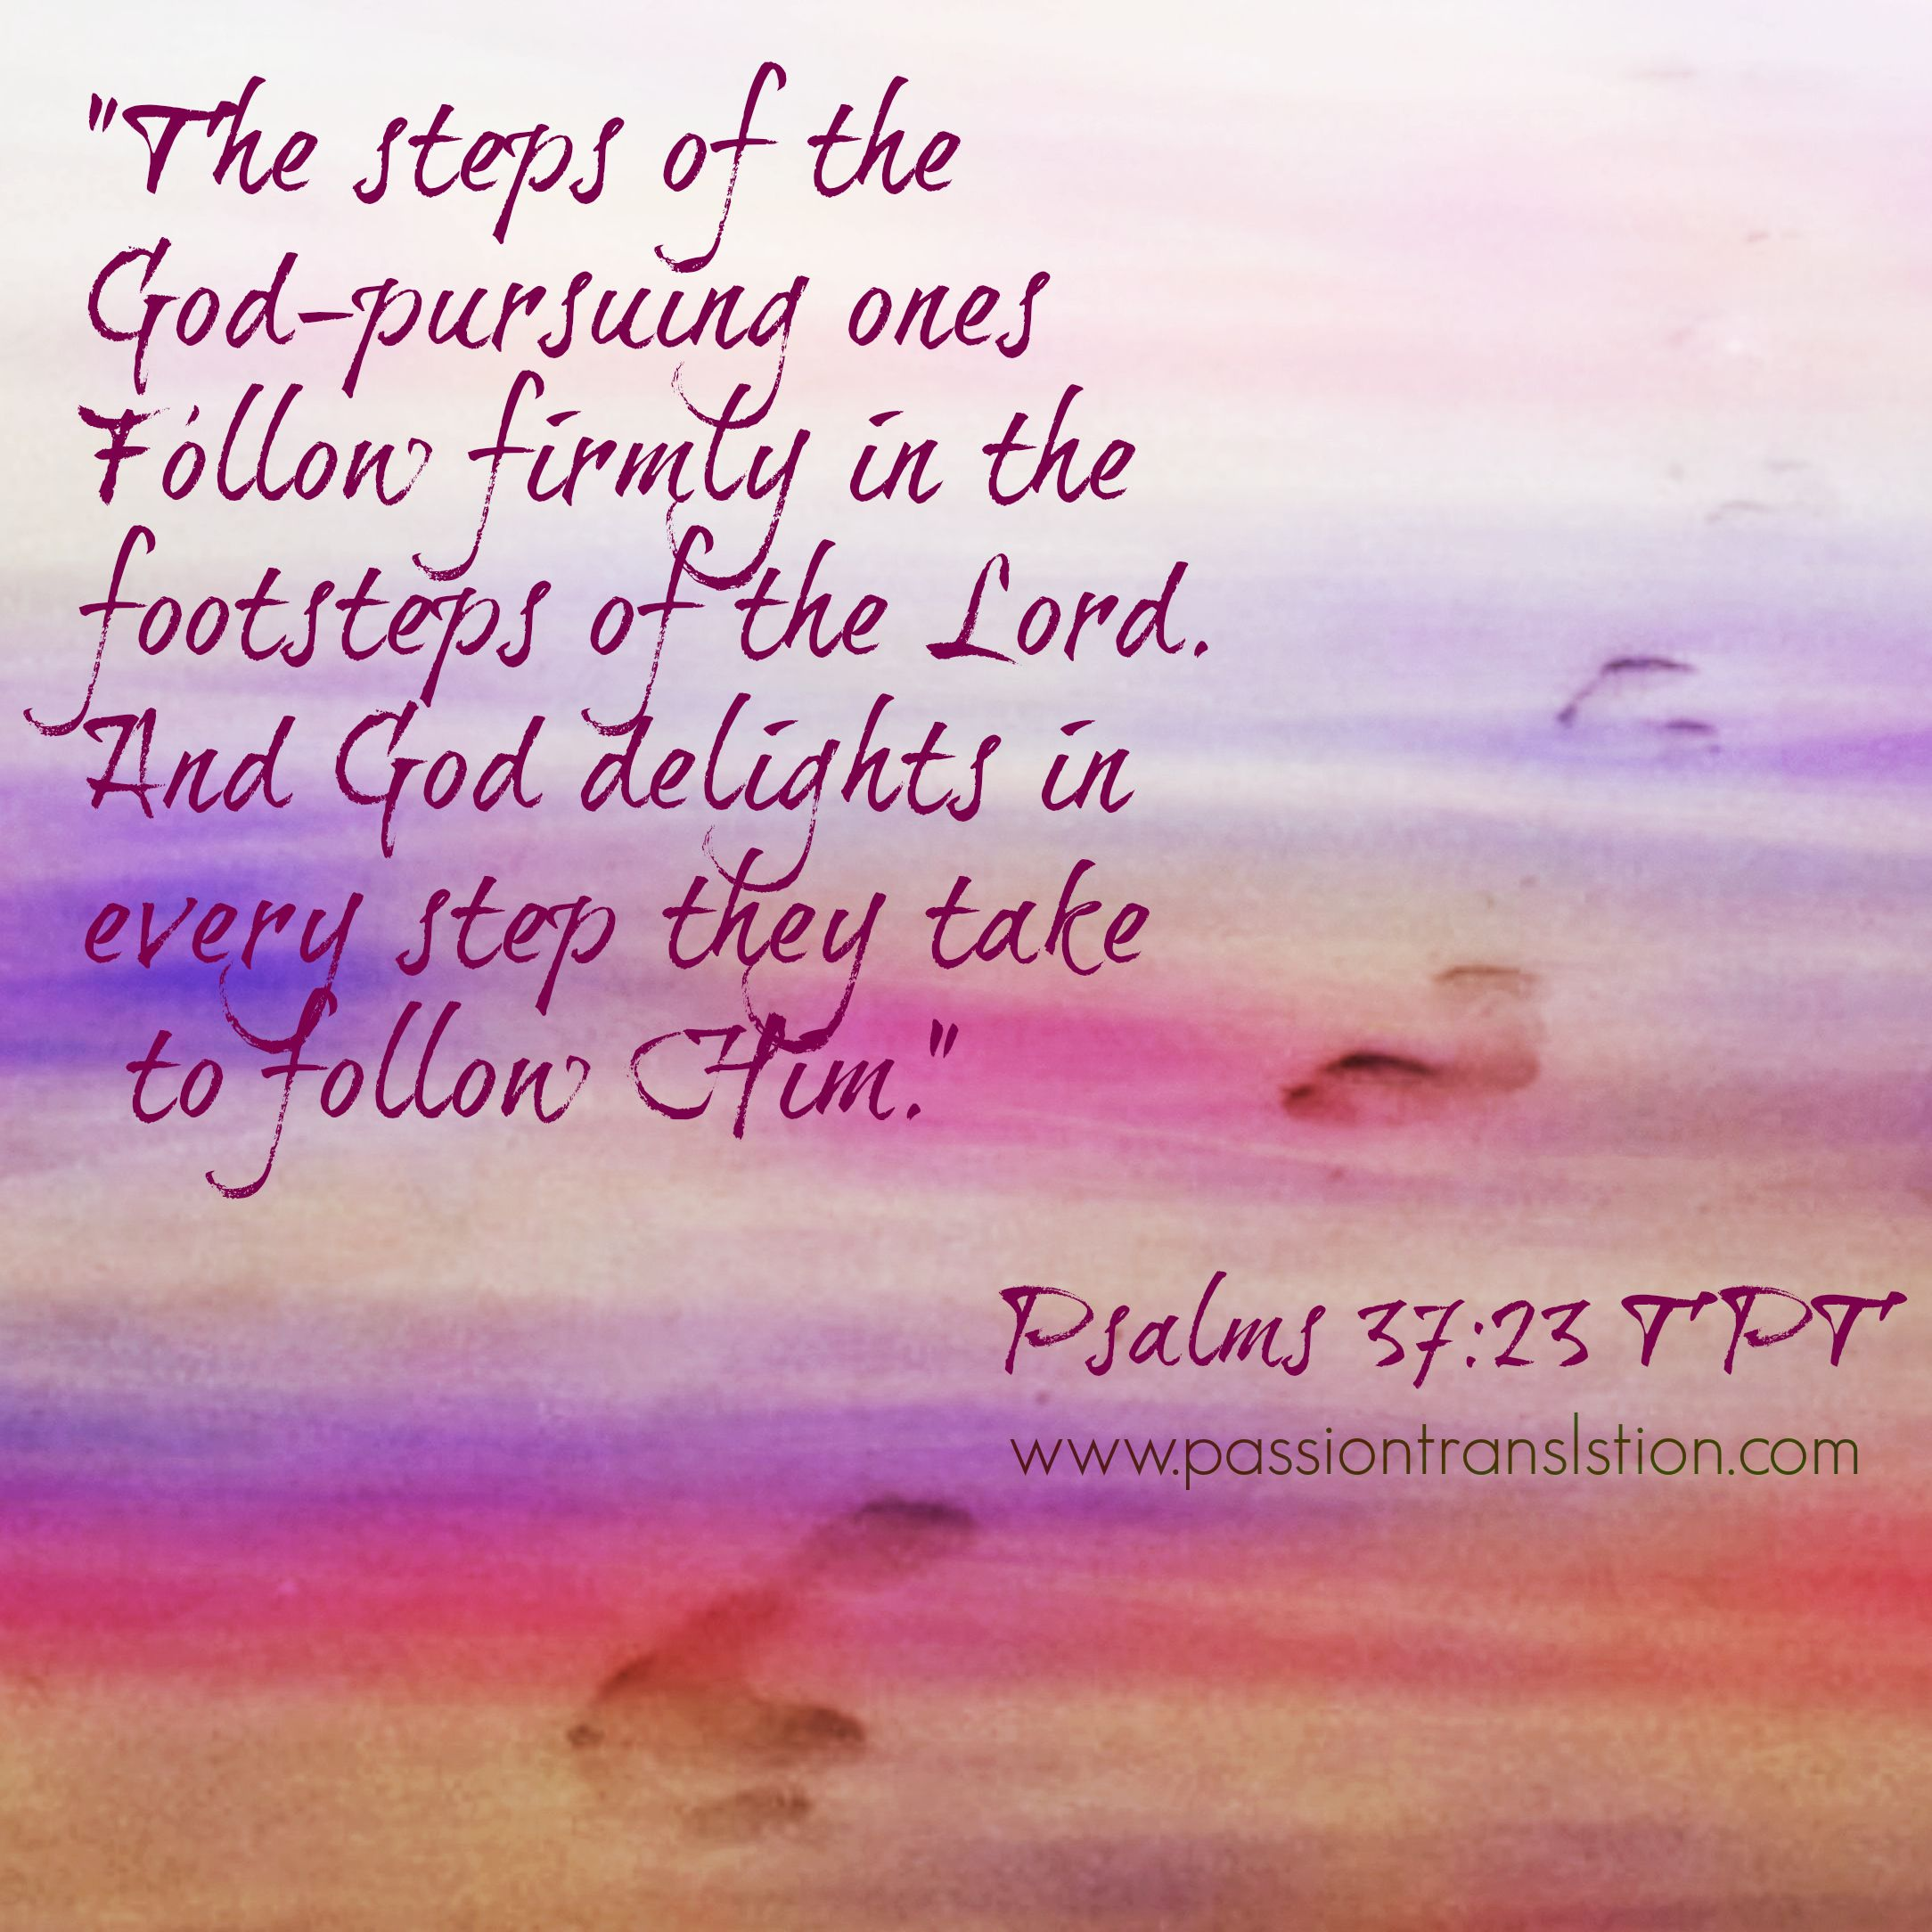 Daily Bible Quotes Text: Psalms 37:25 The Passion Translation